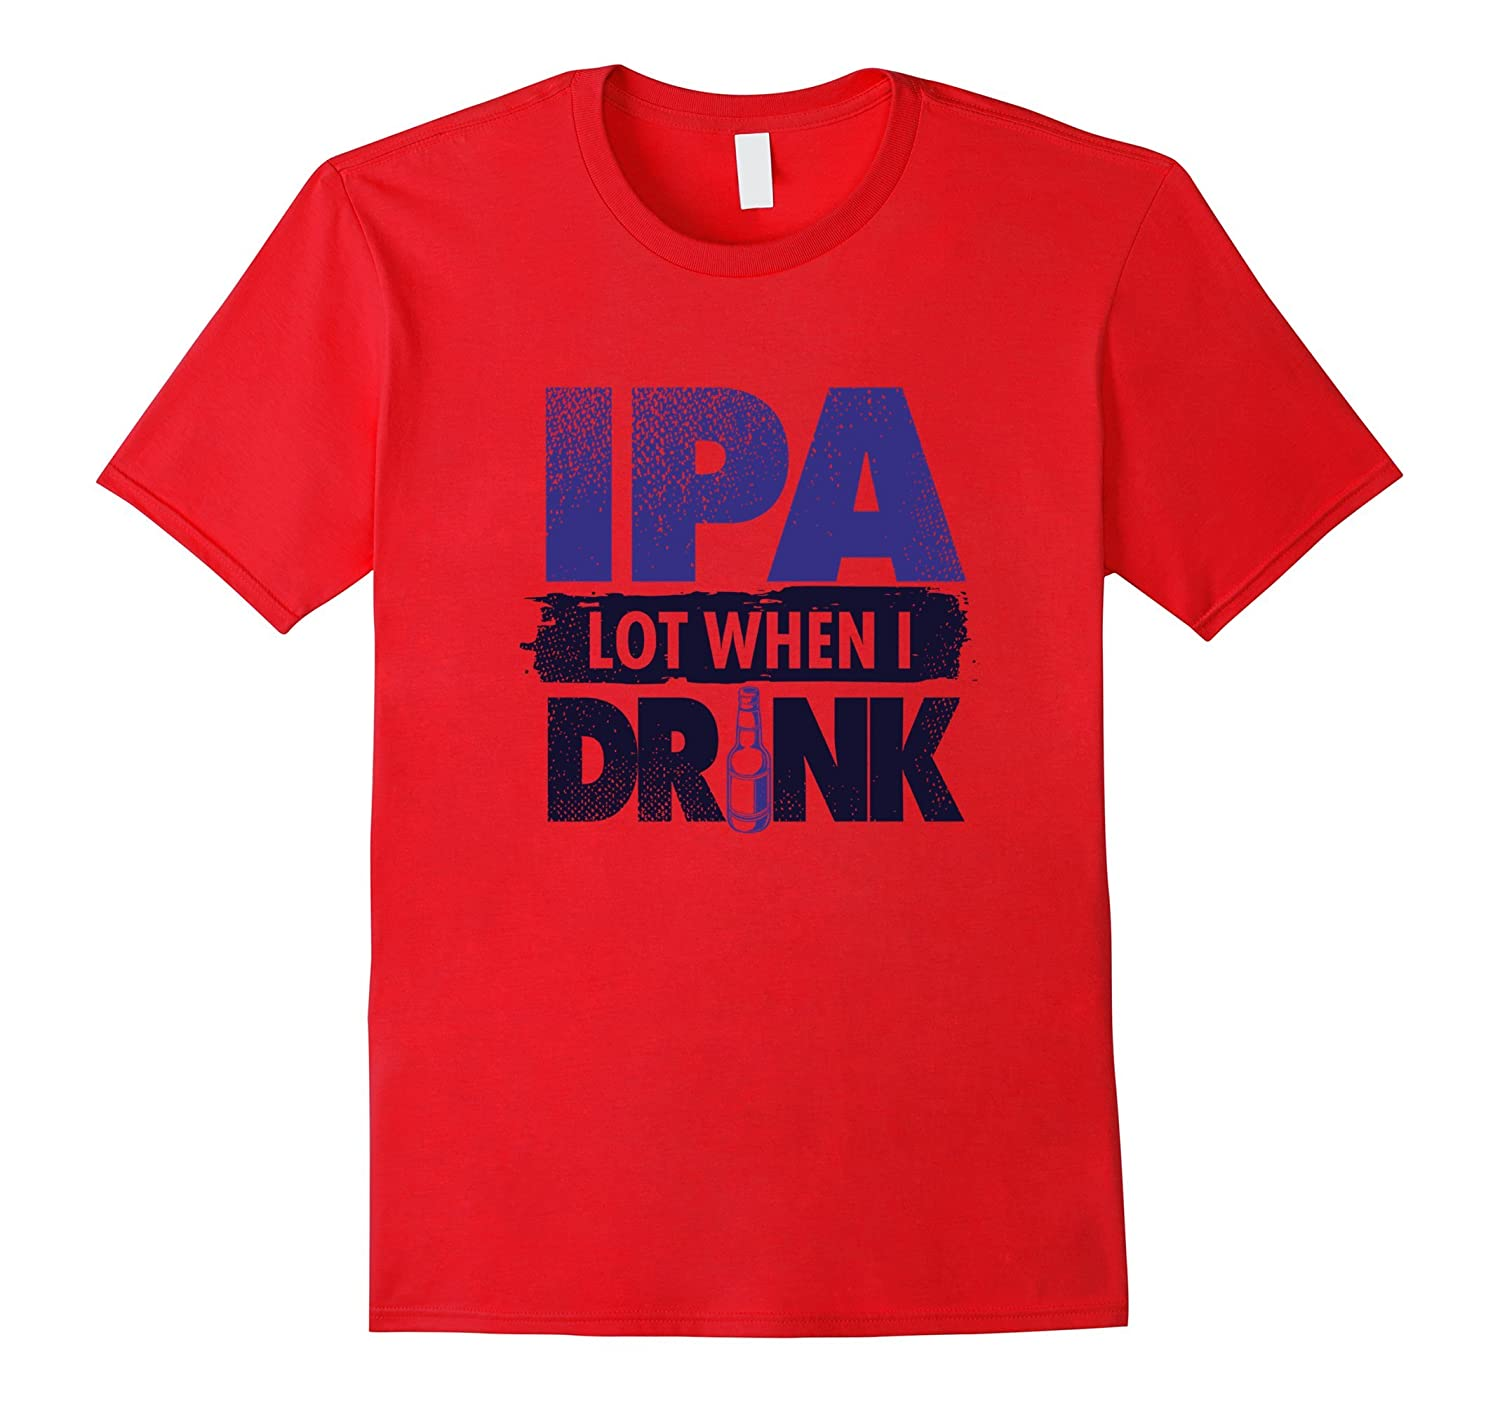 Craft Beer Lovers Tees IPA Lot When I Drink Funny T-Shirt-TD